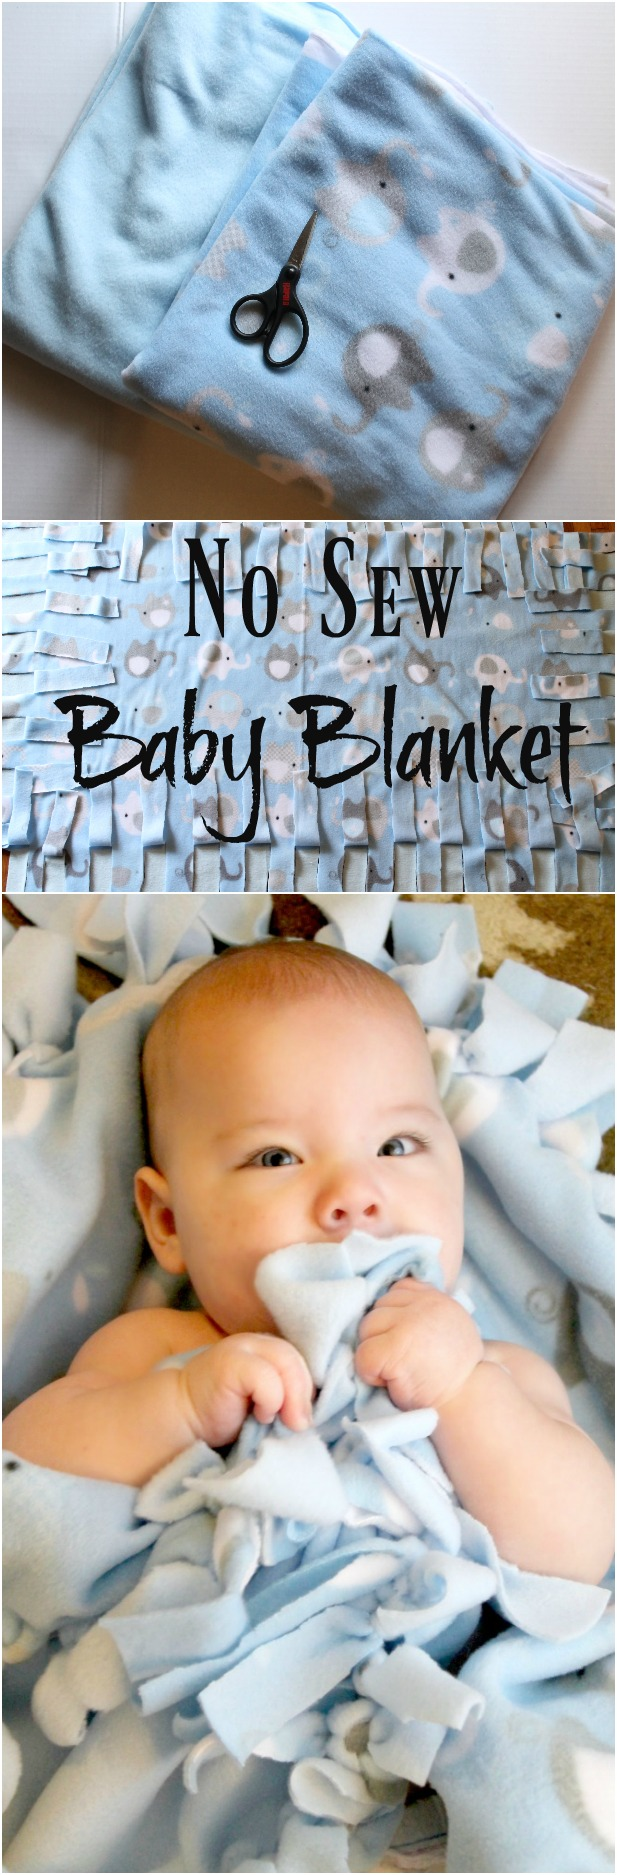 Step by step Instructions with Pictures on How to Make a No Sew Blanket